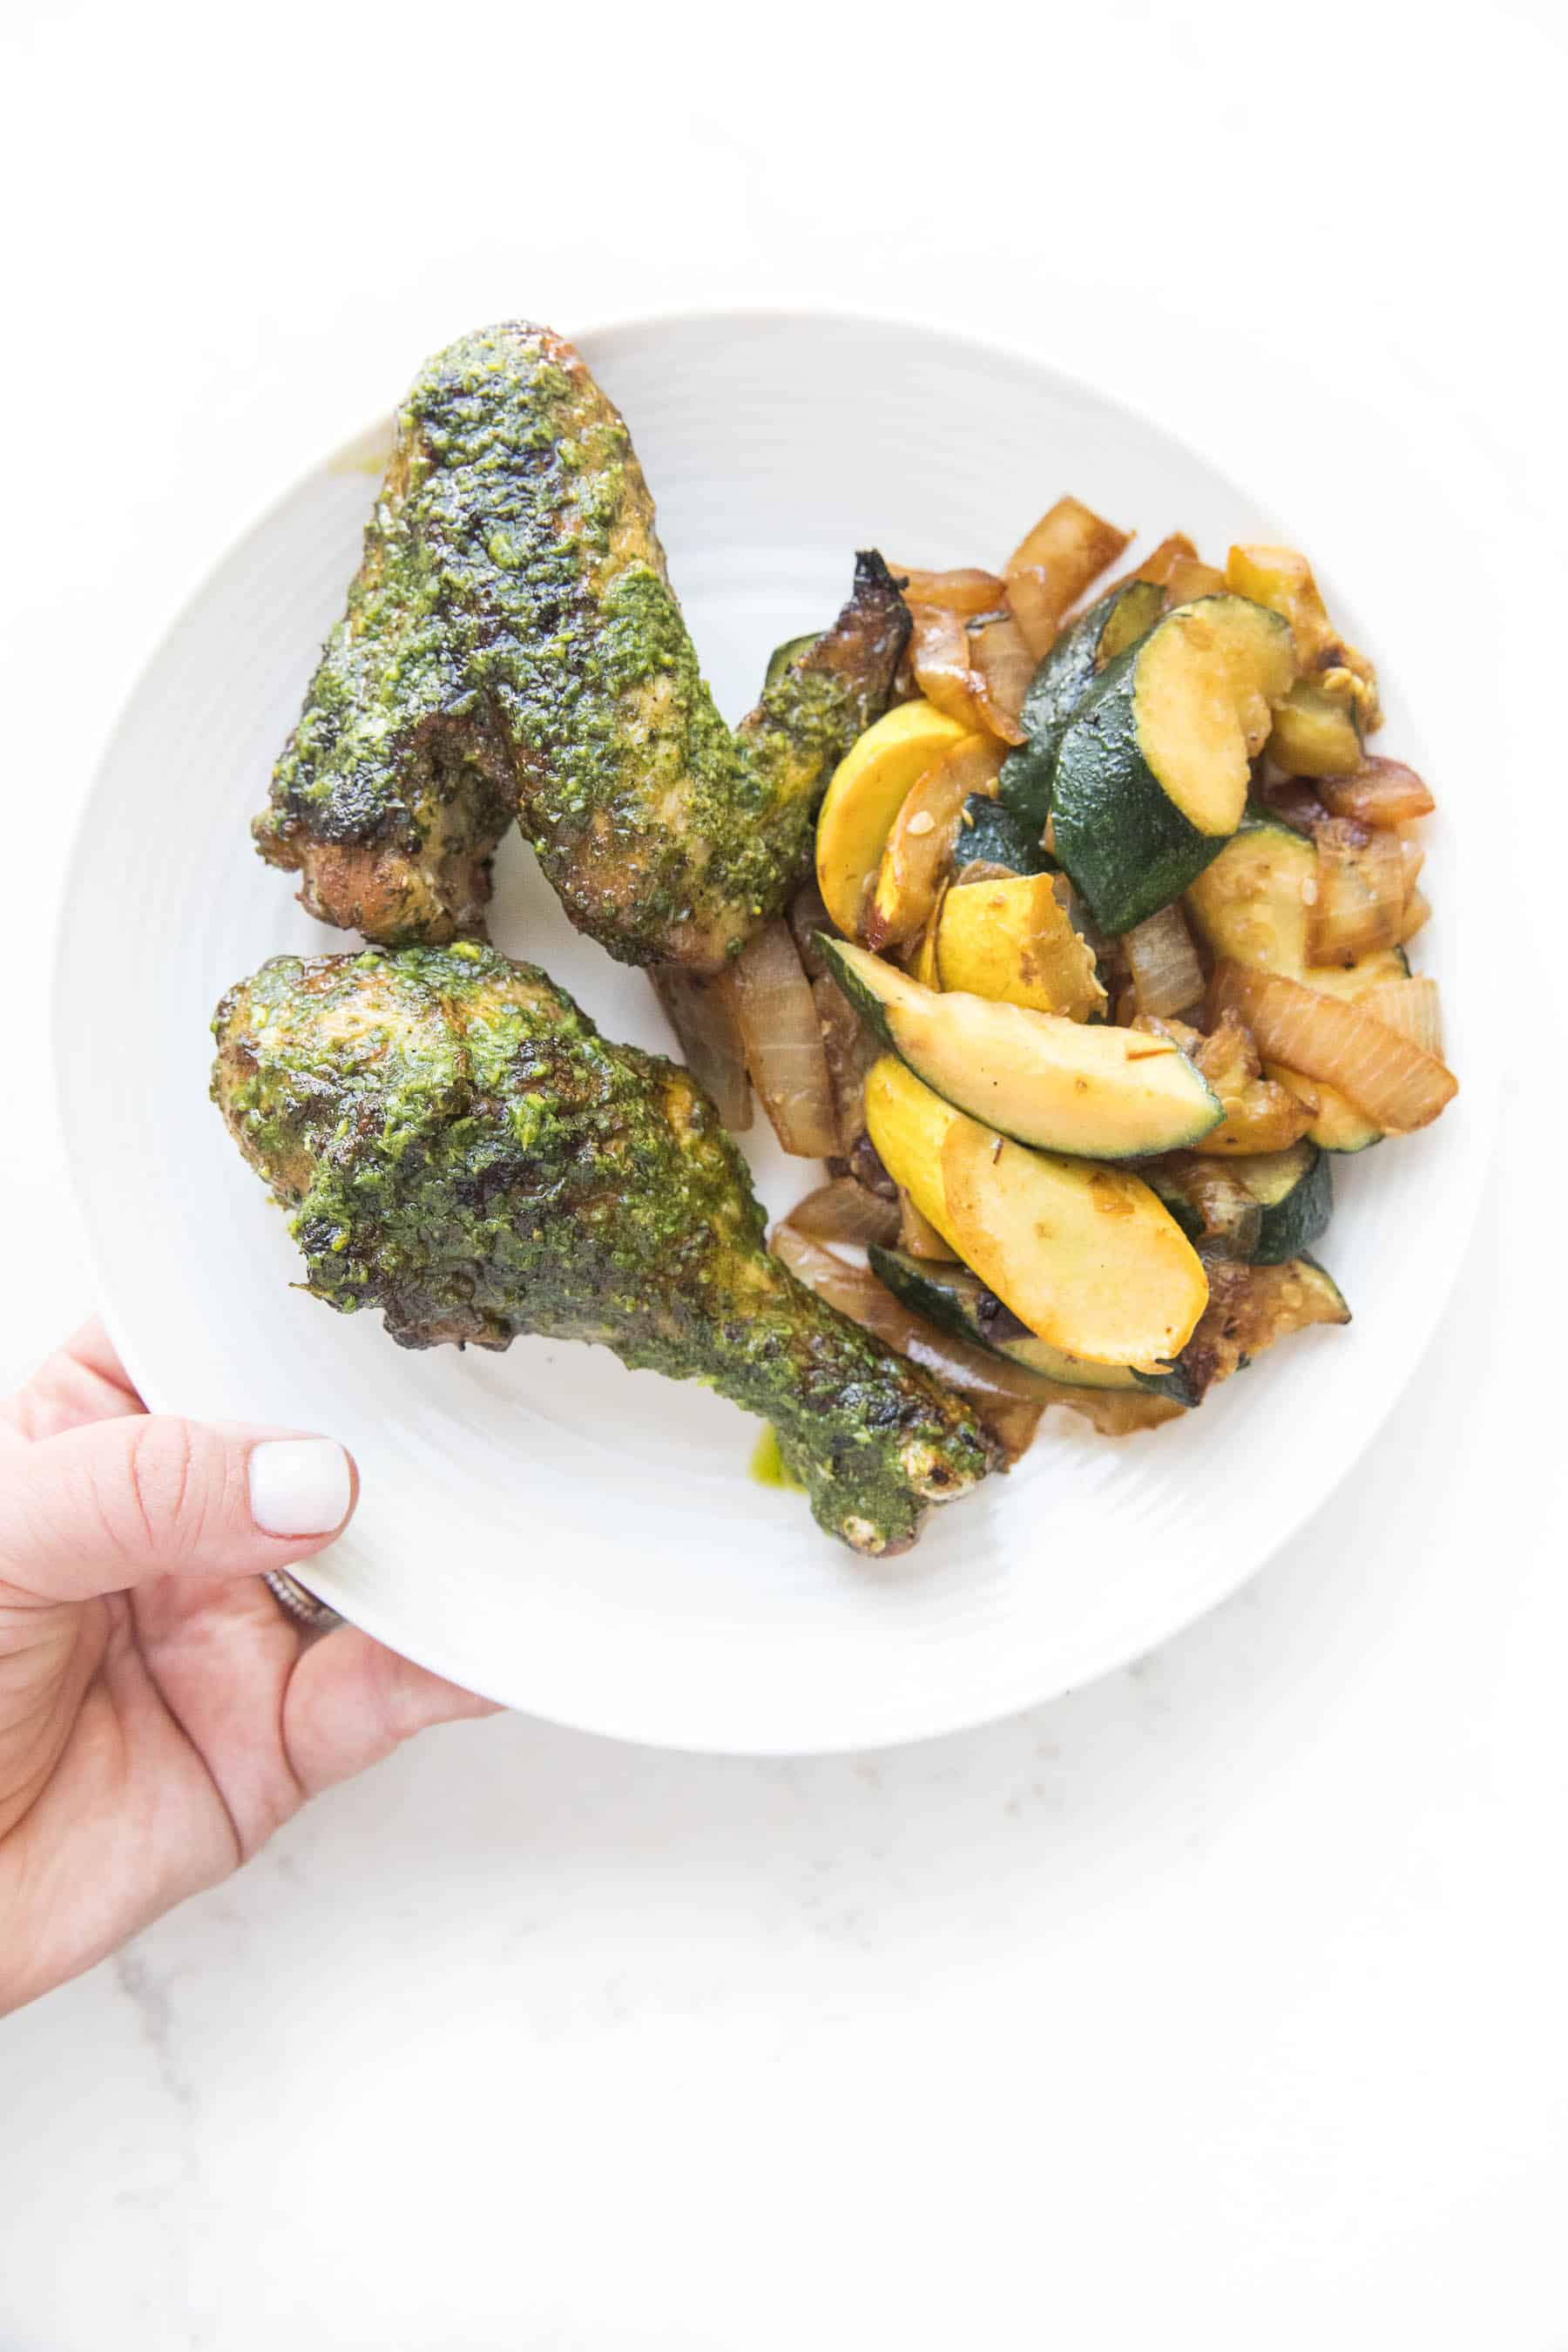 hand holding a white plate of grilled chicken with chimichurri chicken and squash on a white background